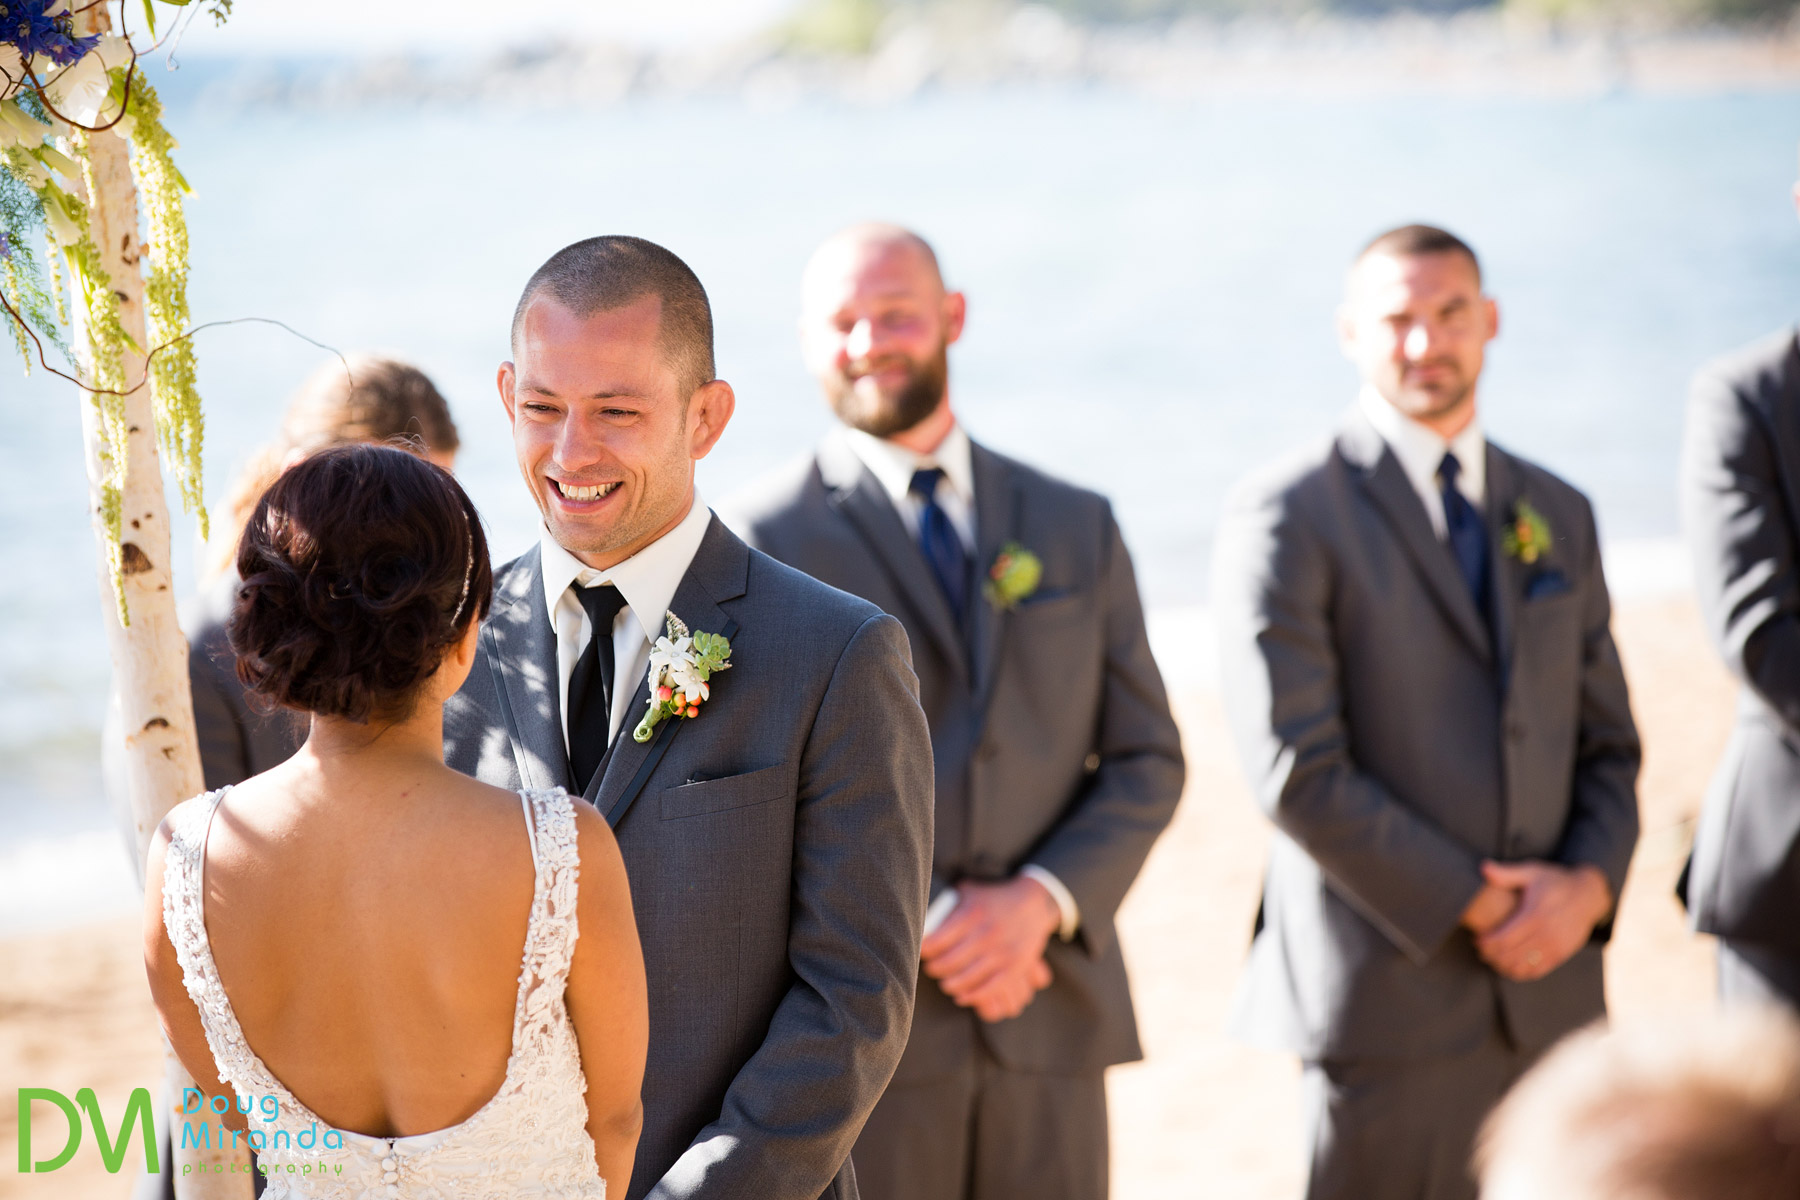 zephyr cove wedding ceremony photos